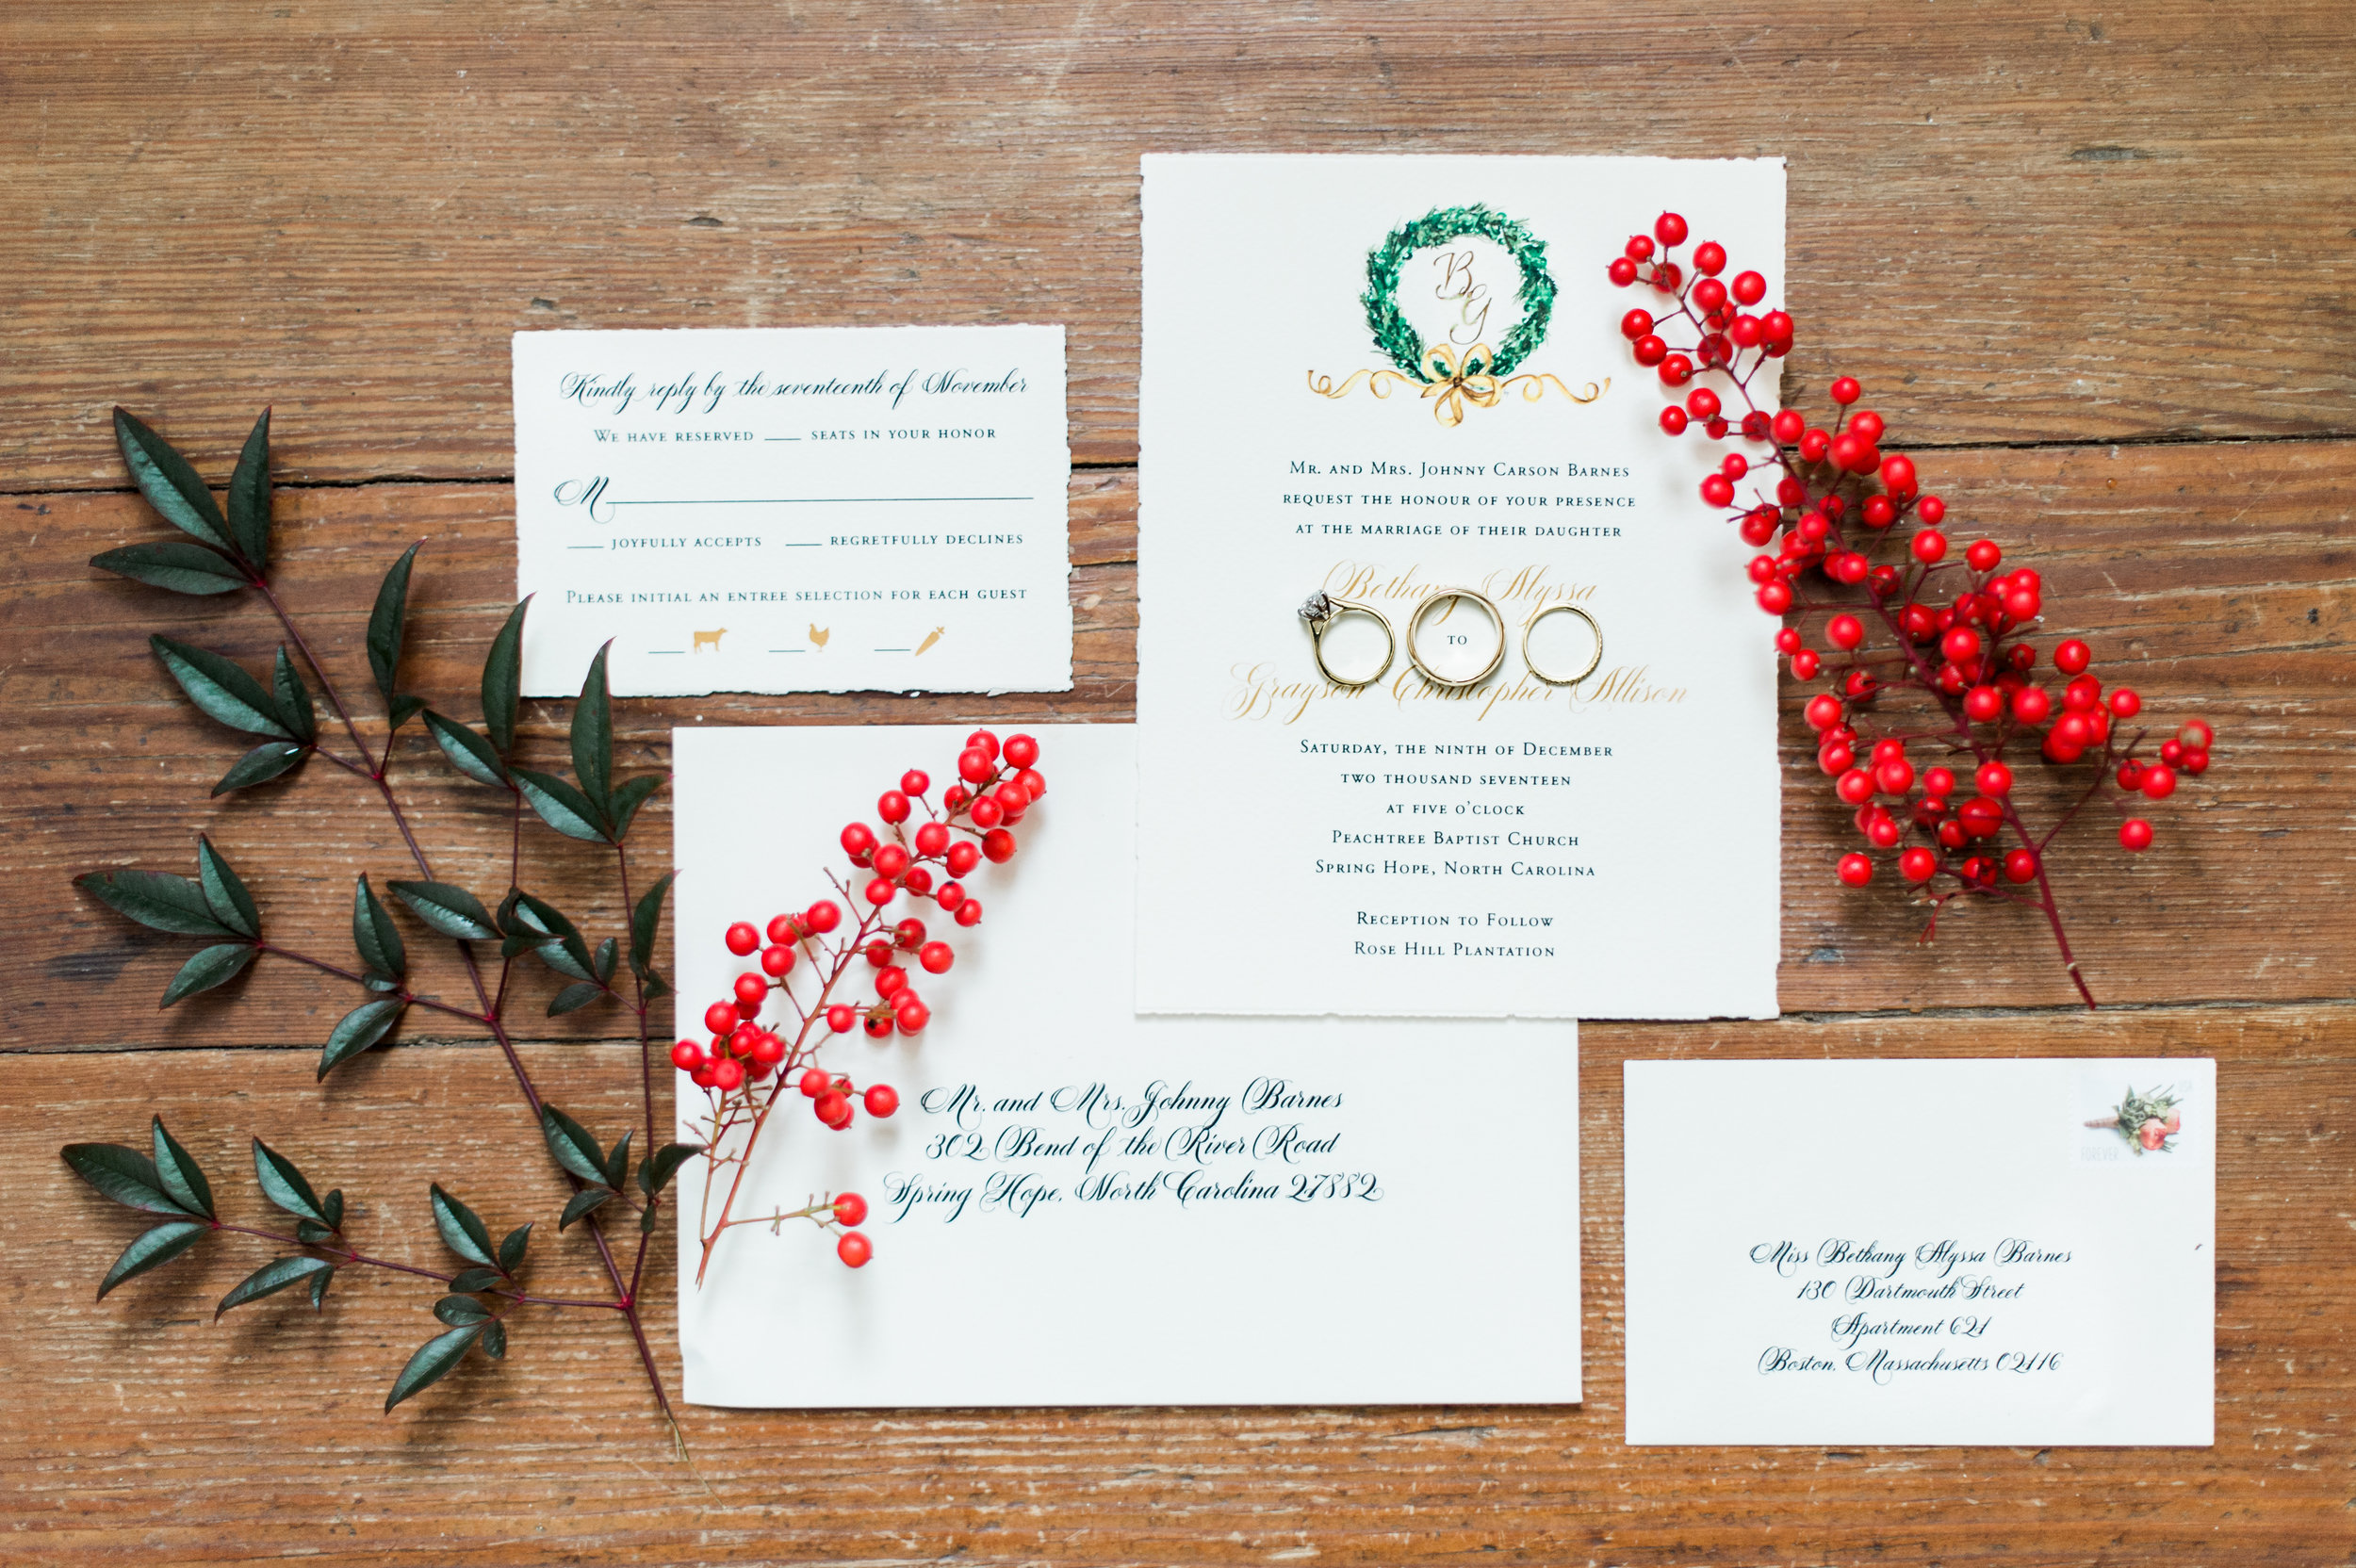 Flat print on Ivory Deckled Edge Paper | Photography courtesy of Missy Mimlitsch